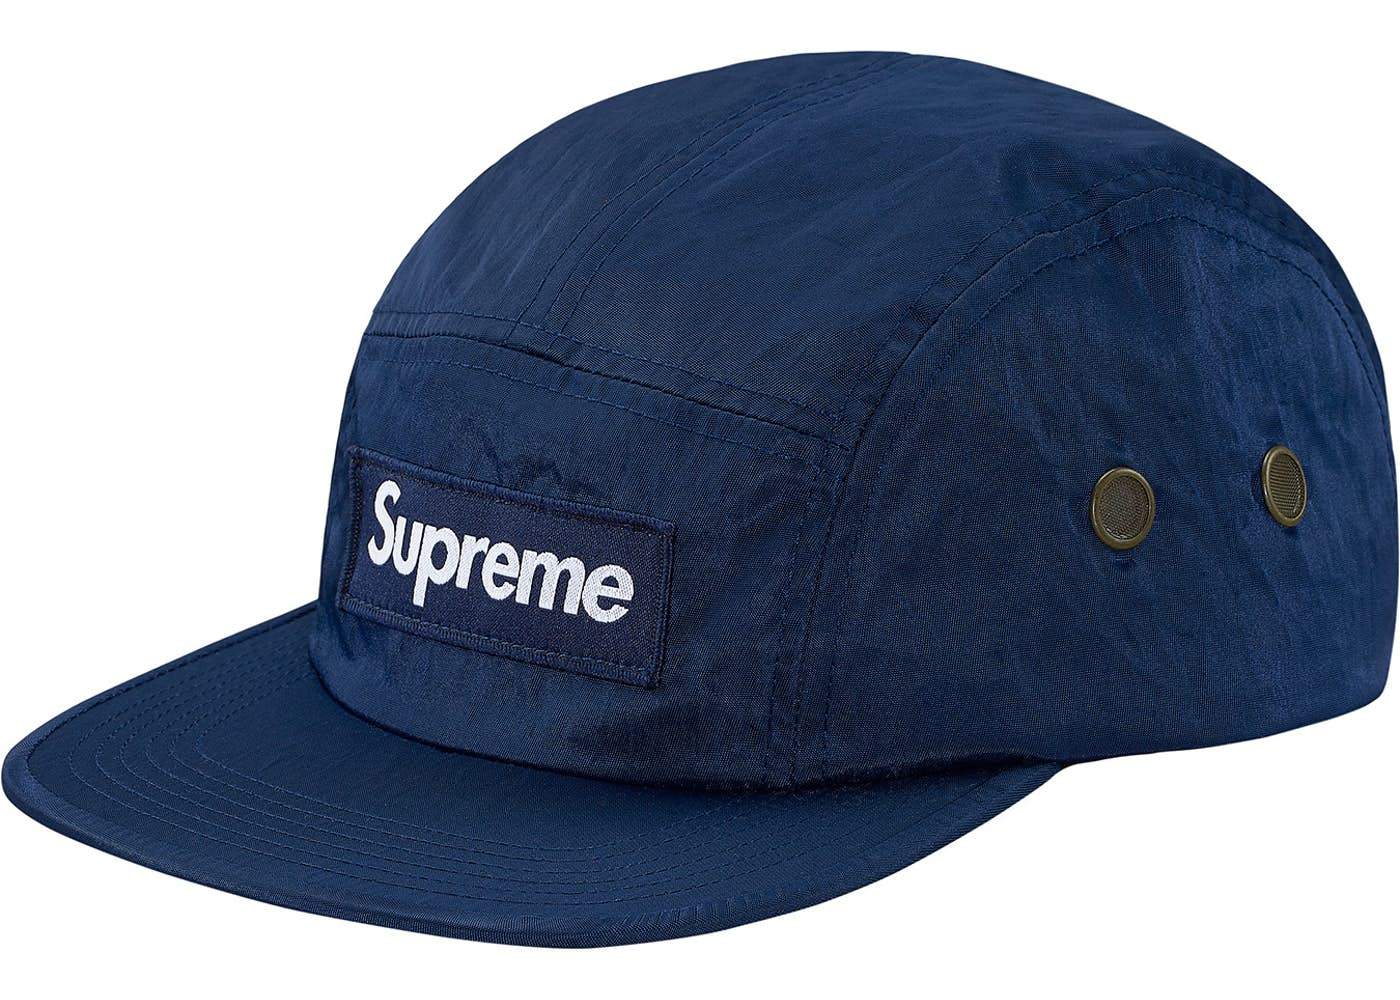 a1008fb03f5 Supreme Camp Cap Washed Nylon Navy Fall Winter 2017 Collection